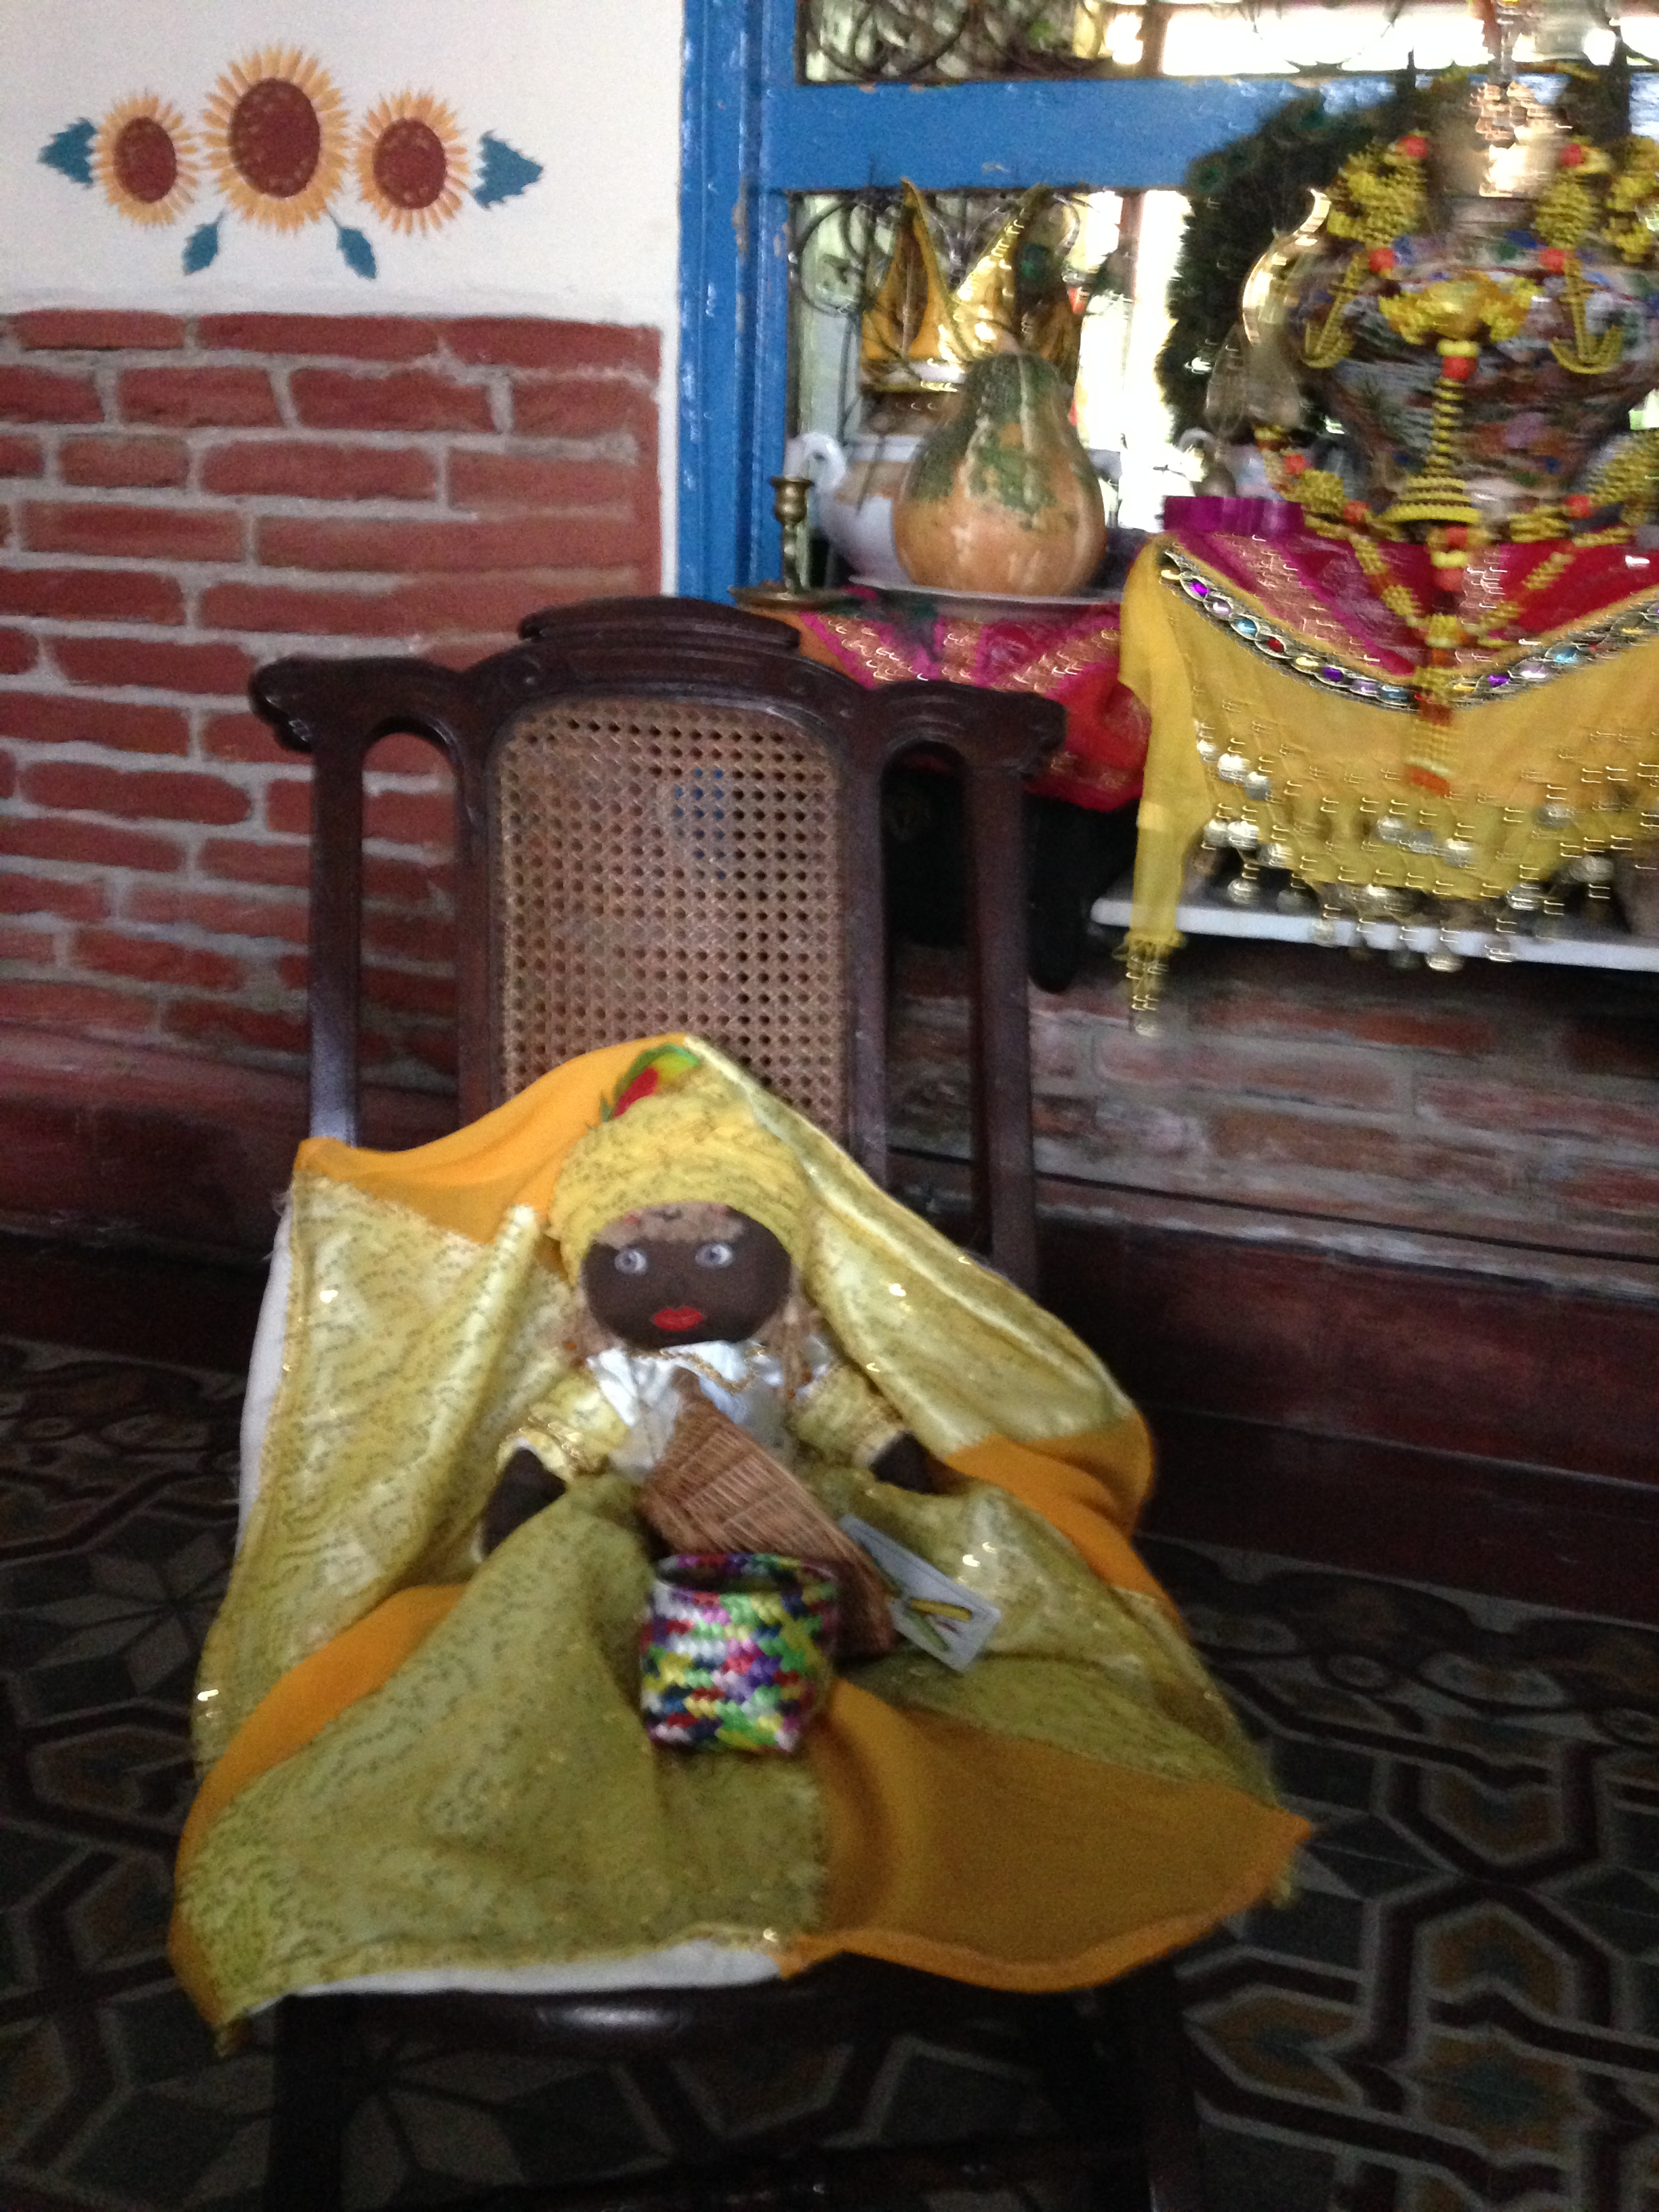 Figure 4. A spiritual doll representing the oricha Ochún (and the Virgin of Caridad del Cobre) occupies a prominent position on a rocking chair in the front room of a religious practitioner's house, where it faces the front door. The shelf behind the doll holds an elaborately decorated porcelain vessel containing the consecrated embodiment of Ochún. Santiago de Cuba, July 2014. Photograph by author.